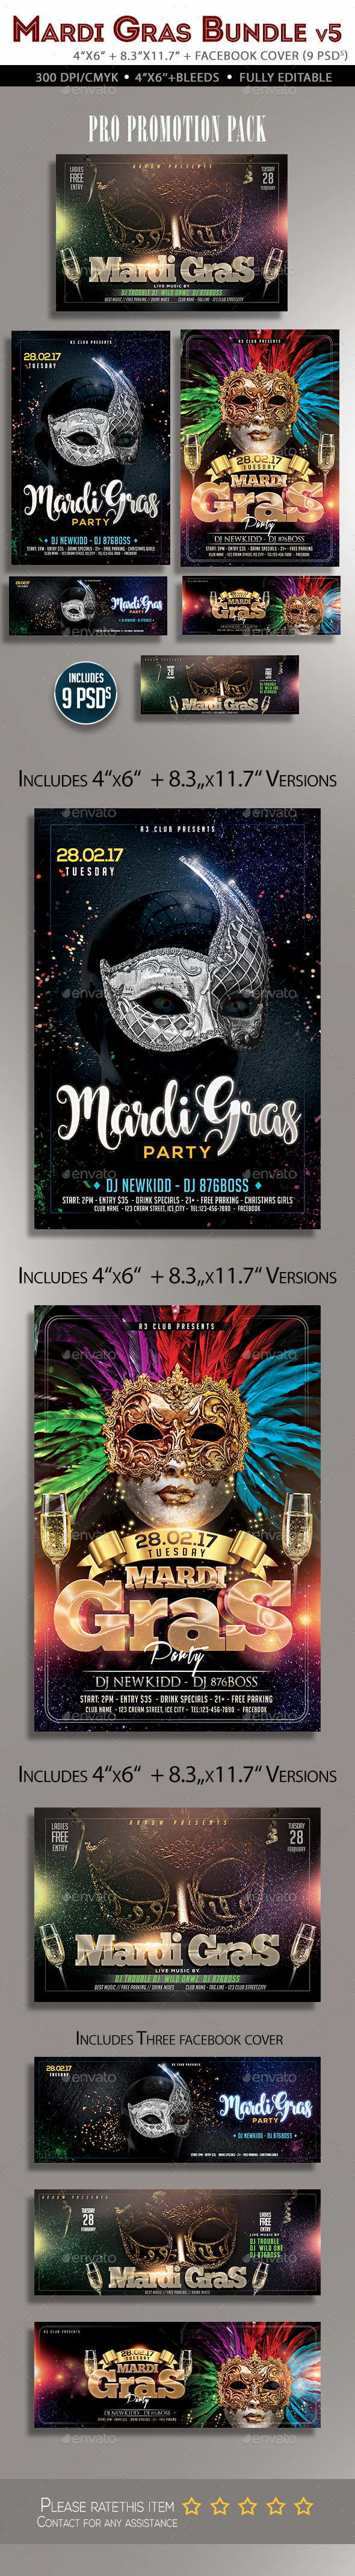 Mardi Gras Flyer Bundle V3 - Clubs & Parties Events